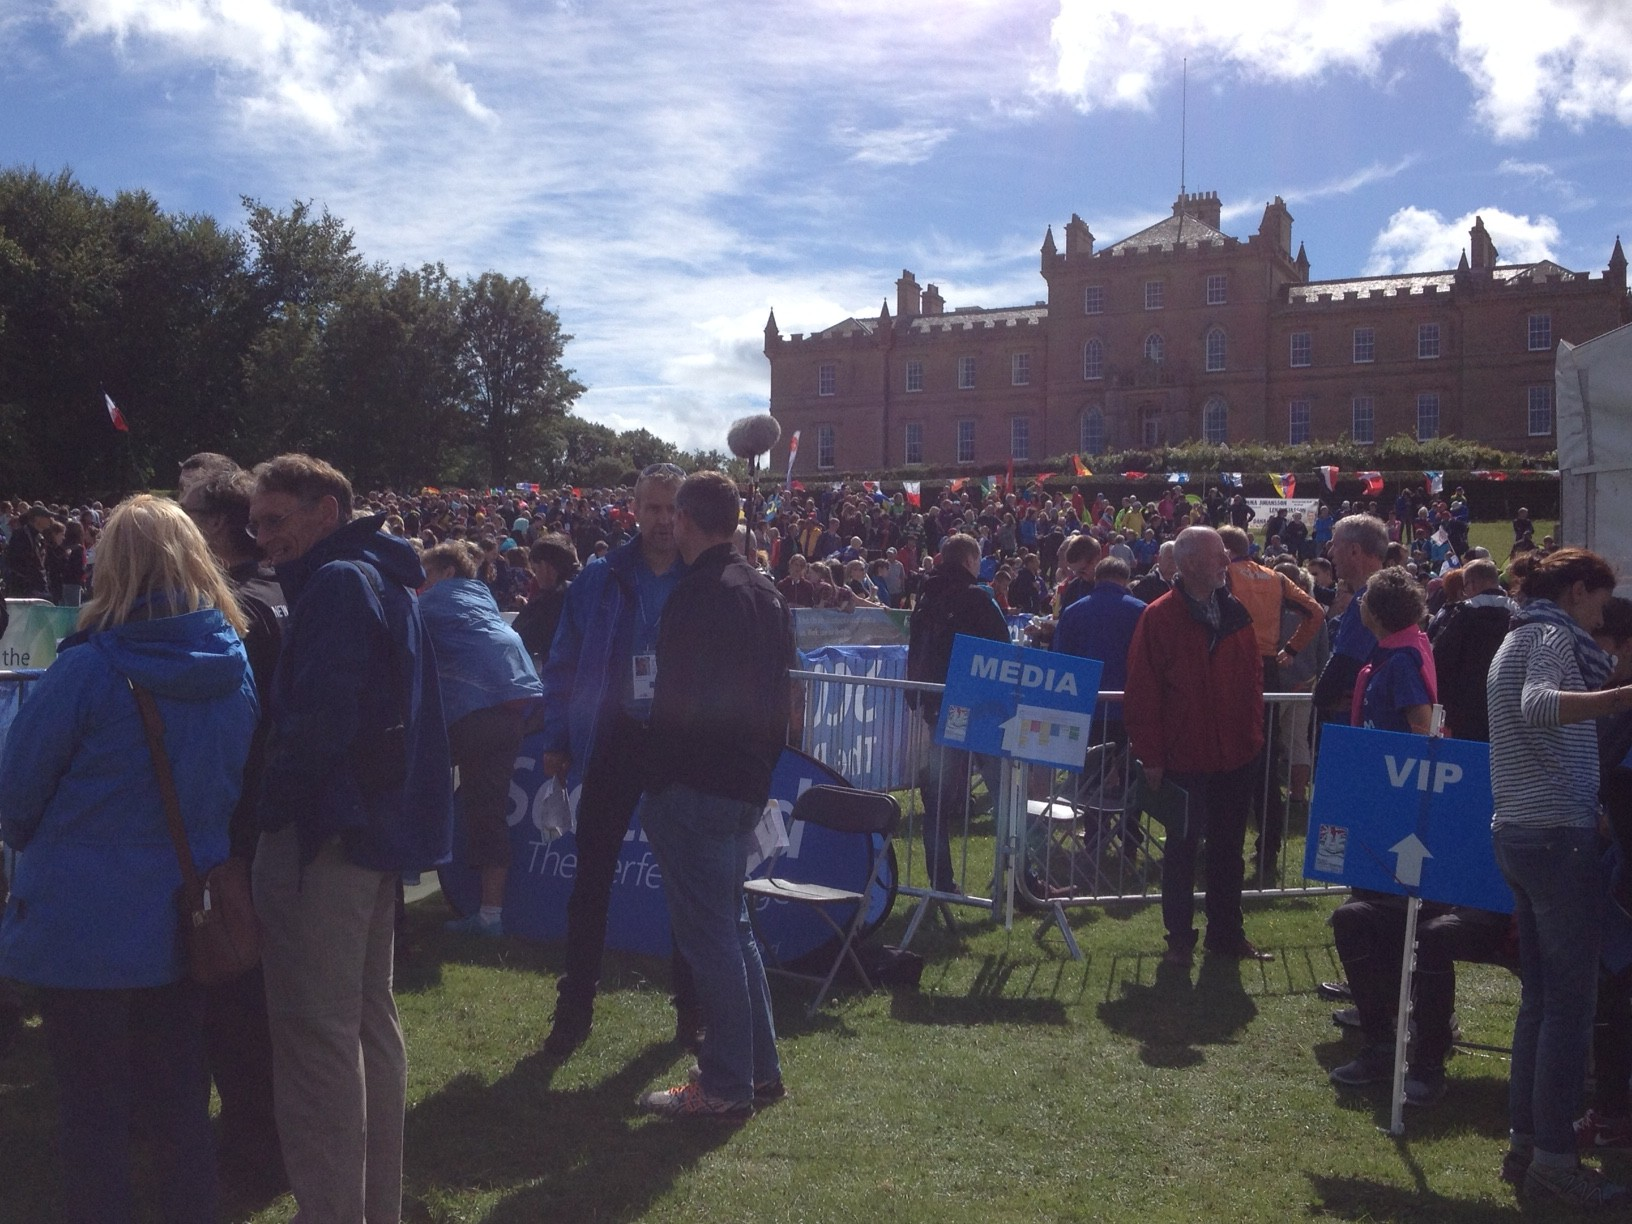 Crowds getting ready to watch the Relay in front of Darnaway Castle, Moray